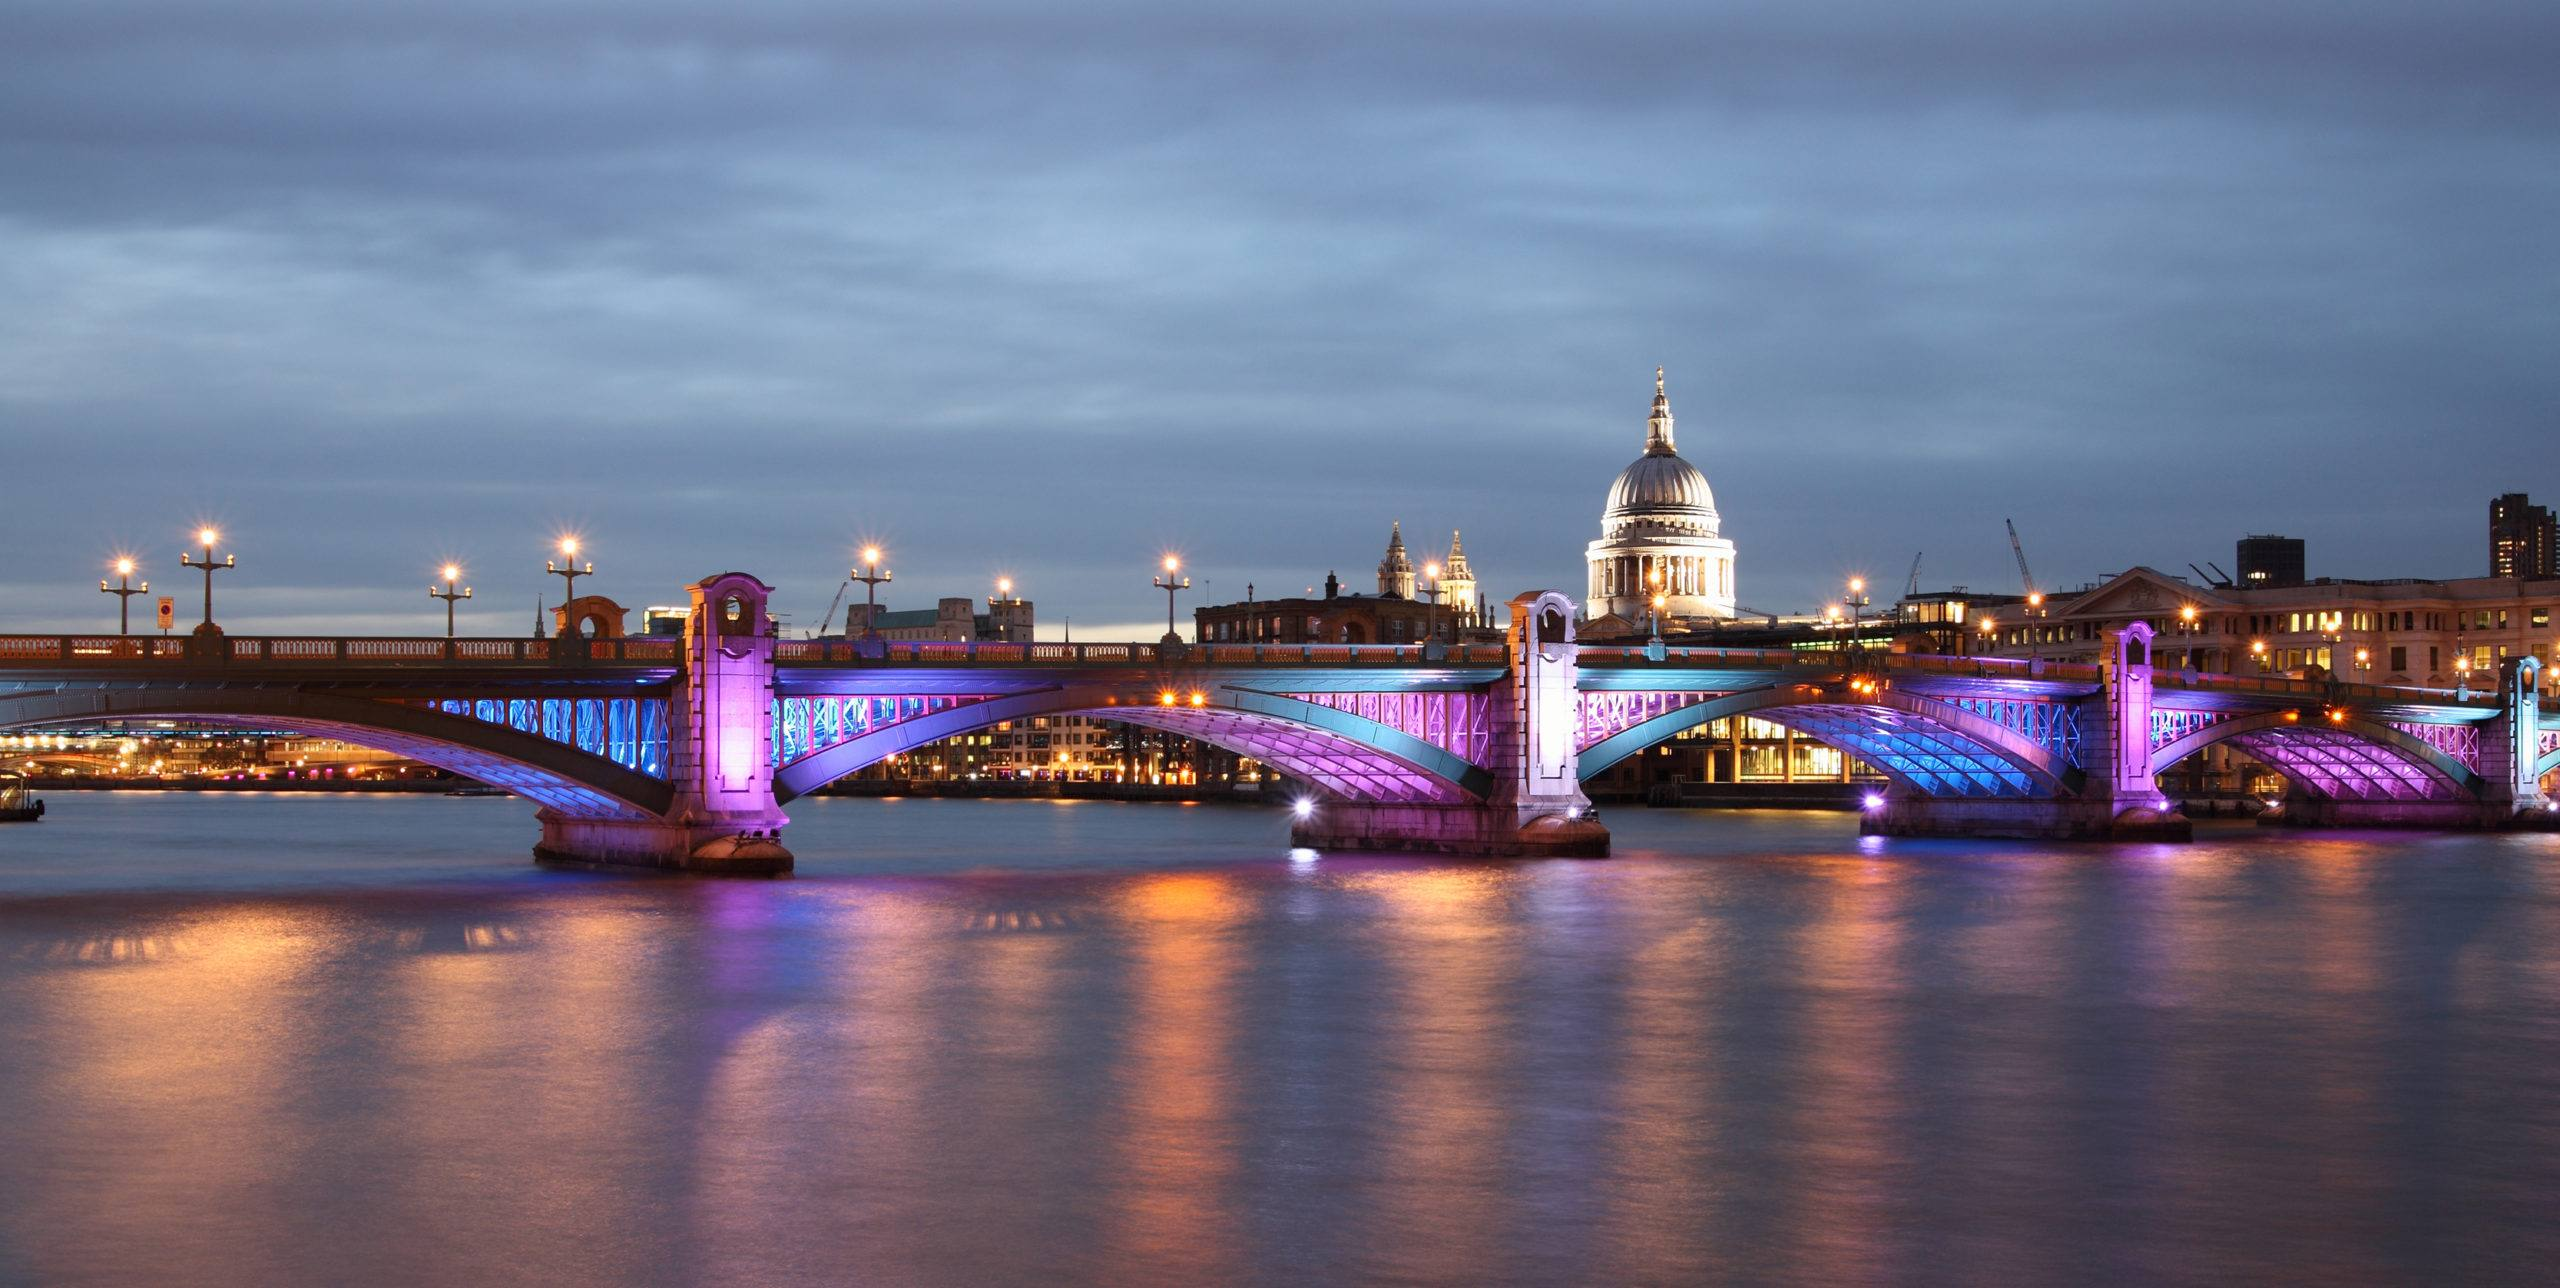 the-iconic-illuminated-Thames-scenery